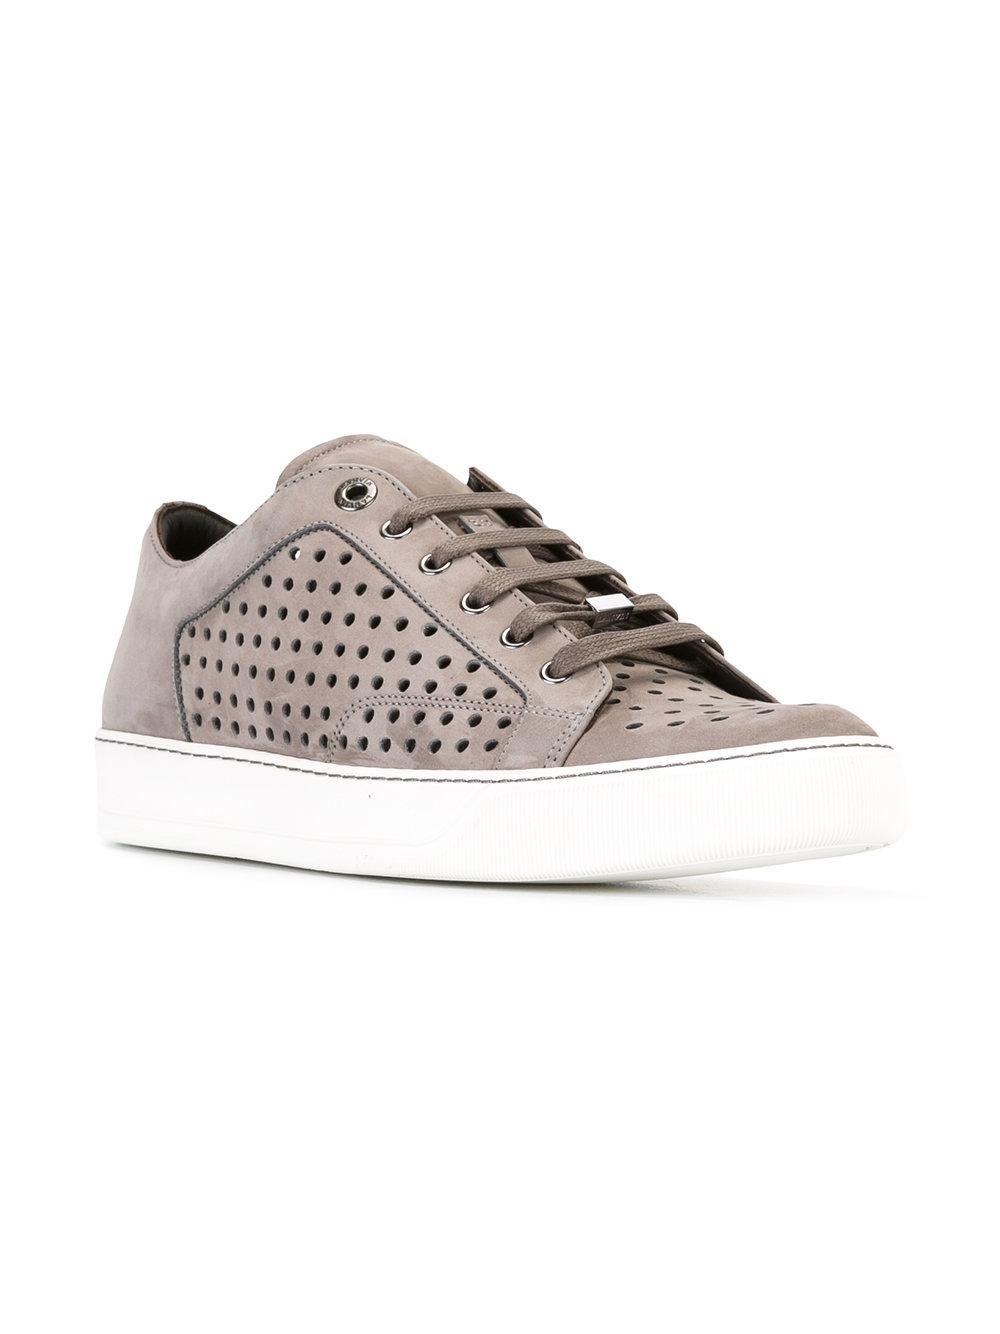 Lyst - Lanvin Perforated Sneakers in Brown for Men